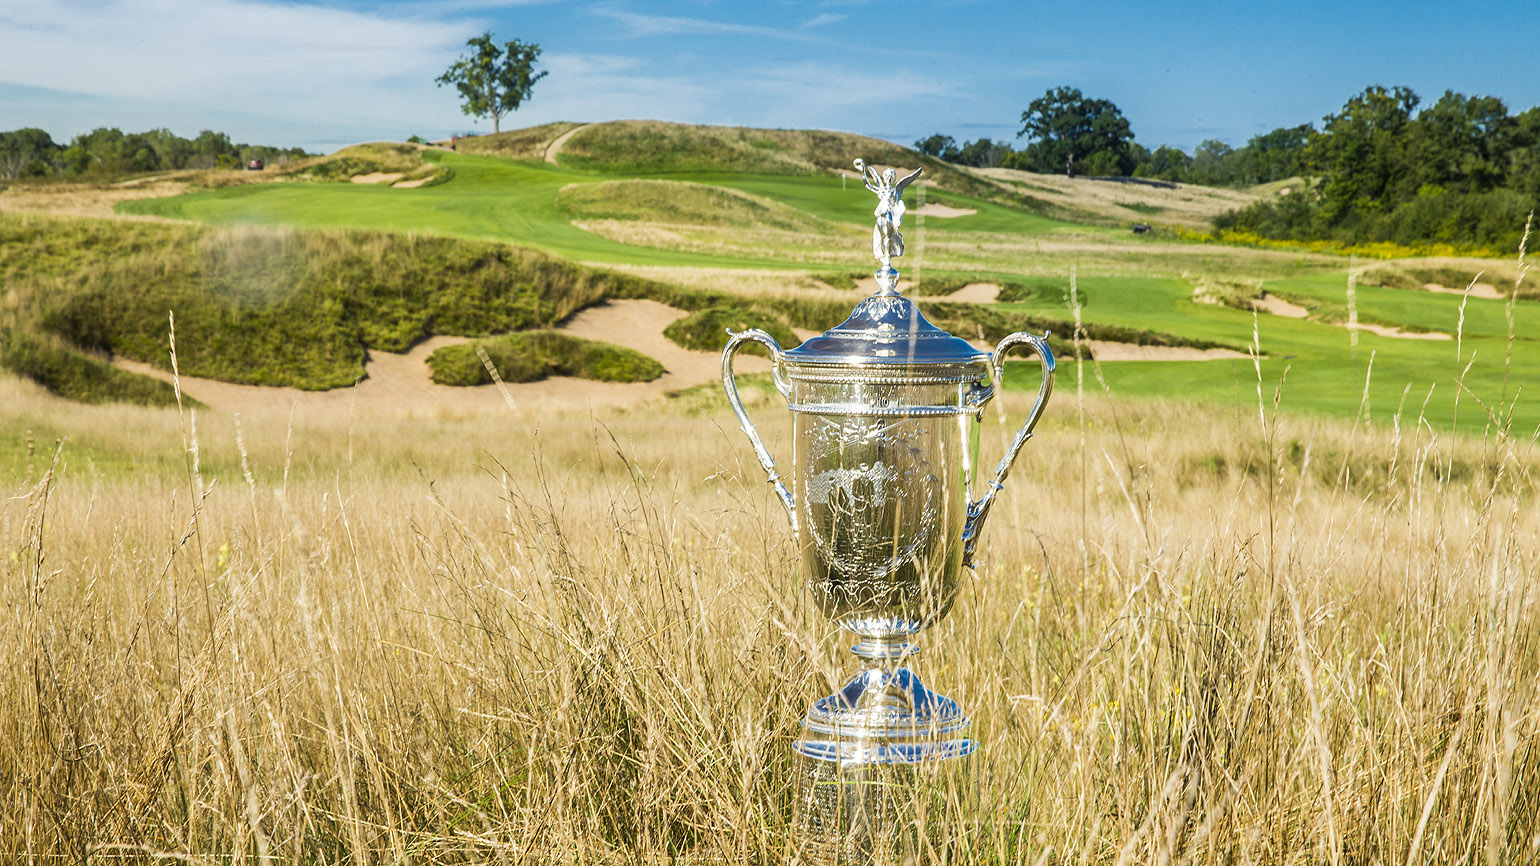 championships sectional qualifying sites announced for 117th u s open